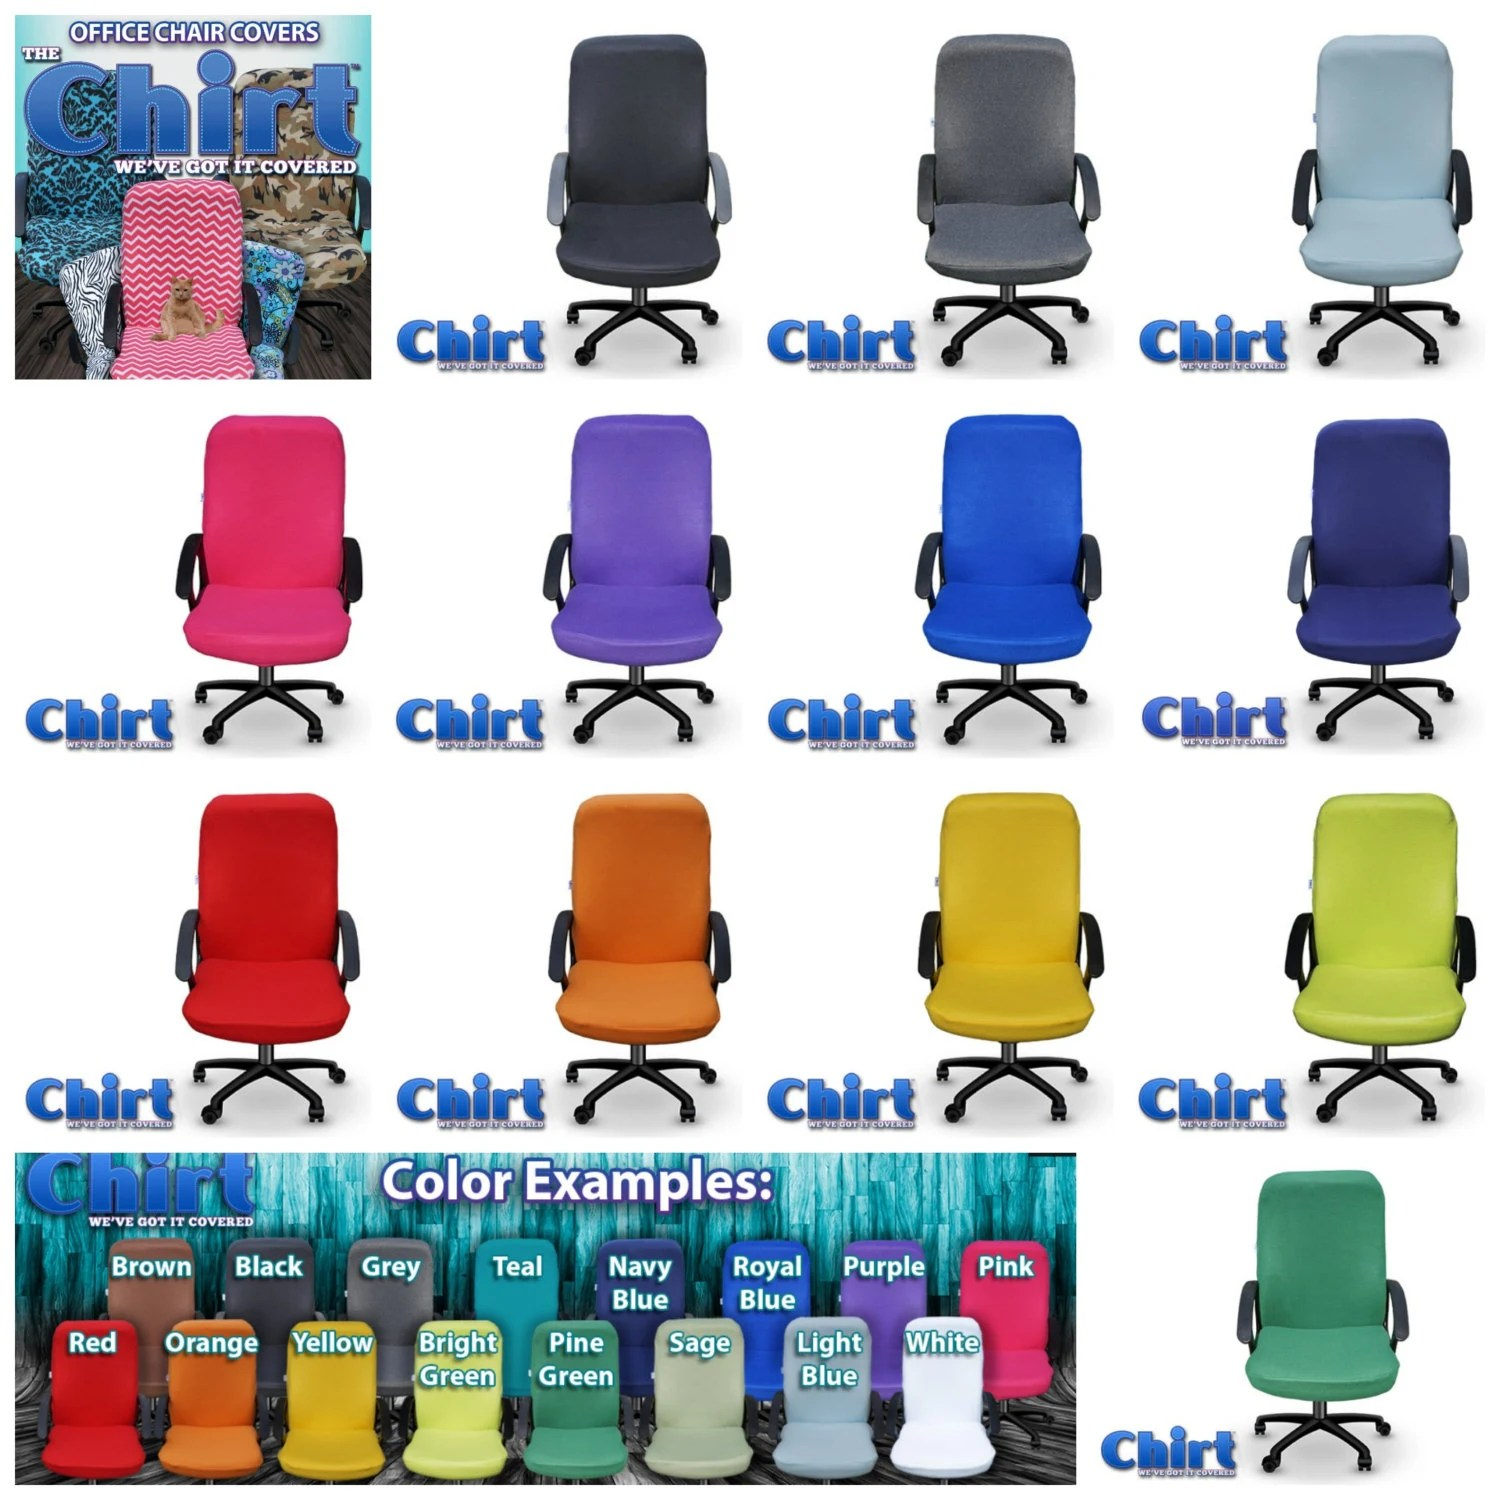 colorful office chairs hanging chair tutorial solid color chirt shirt custom cover